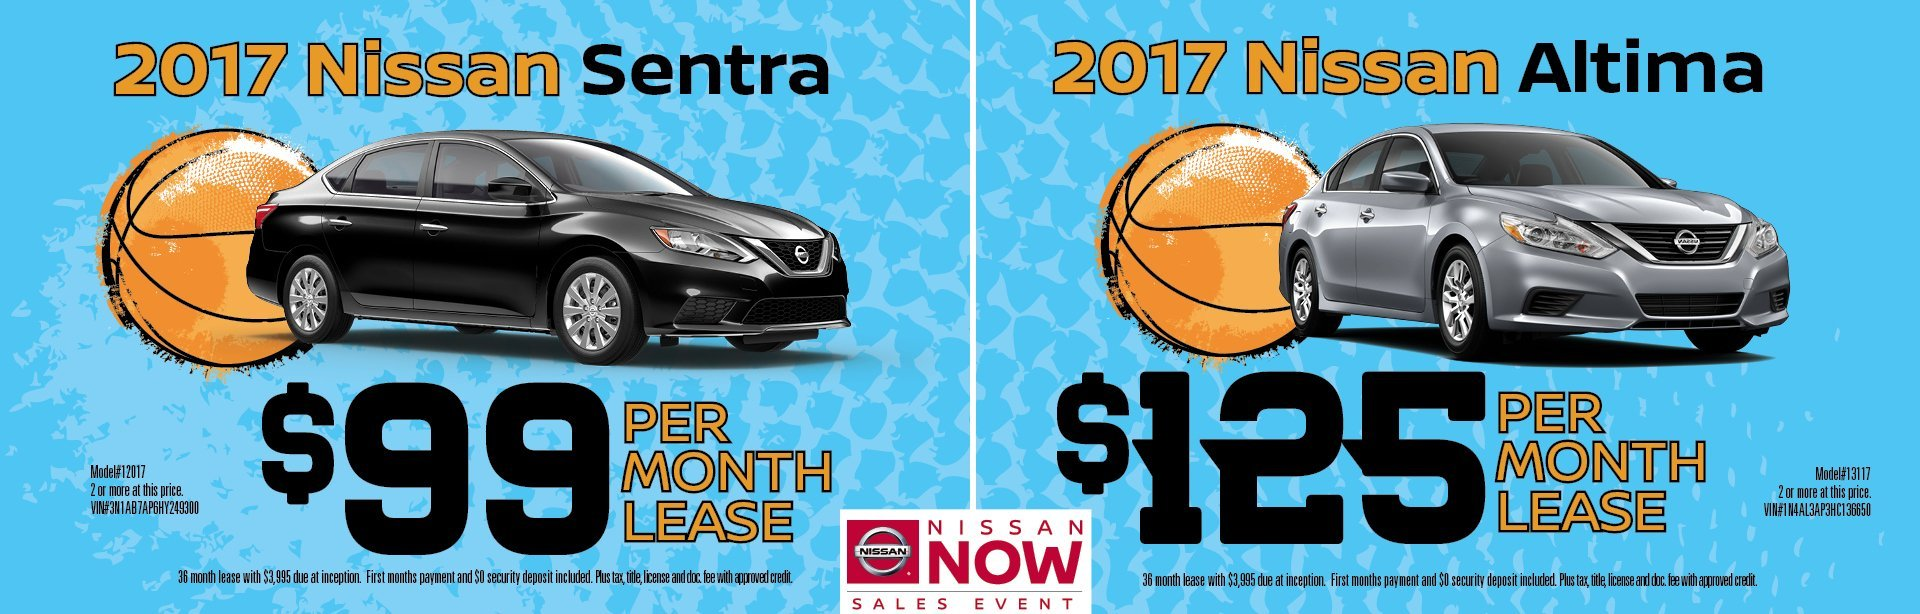 Awesome 2017 Nissan Sentra Compact Altima Sedan Lease Specials Arlington Heights  Chicago Il